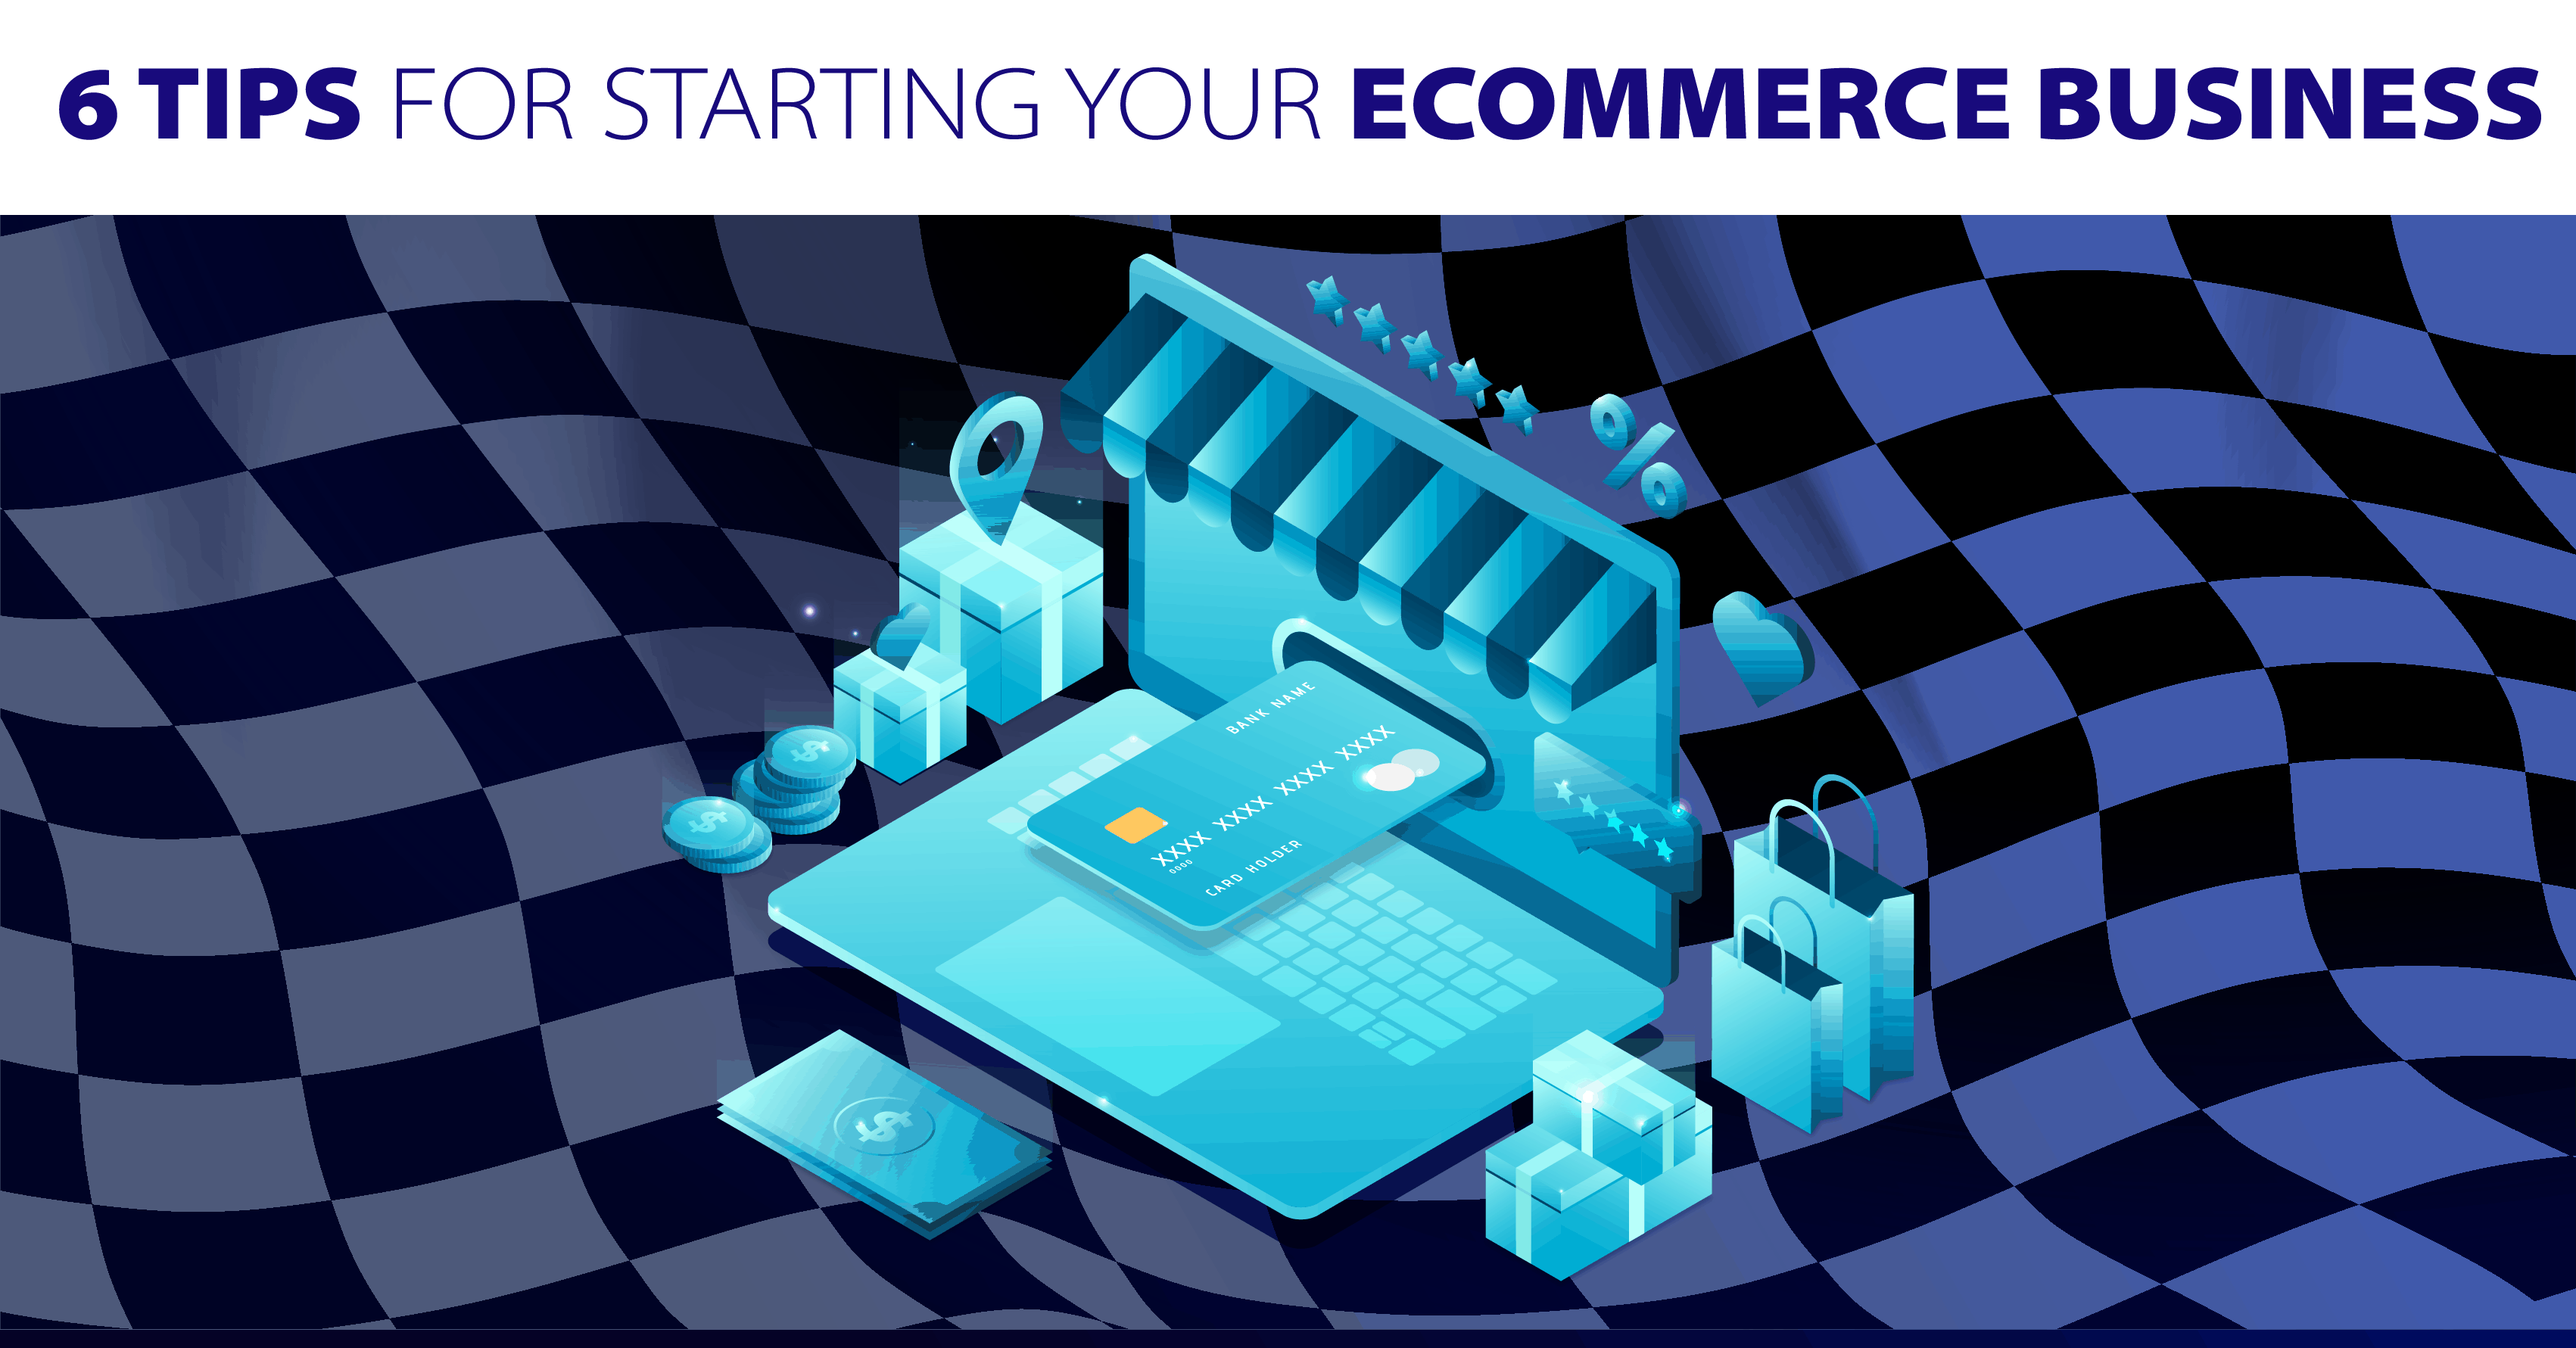 6 tips to start your eCommerce business